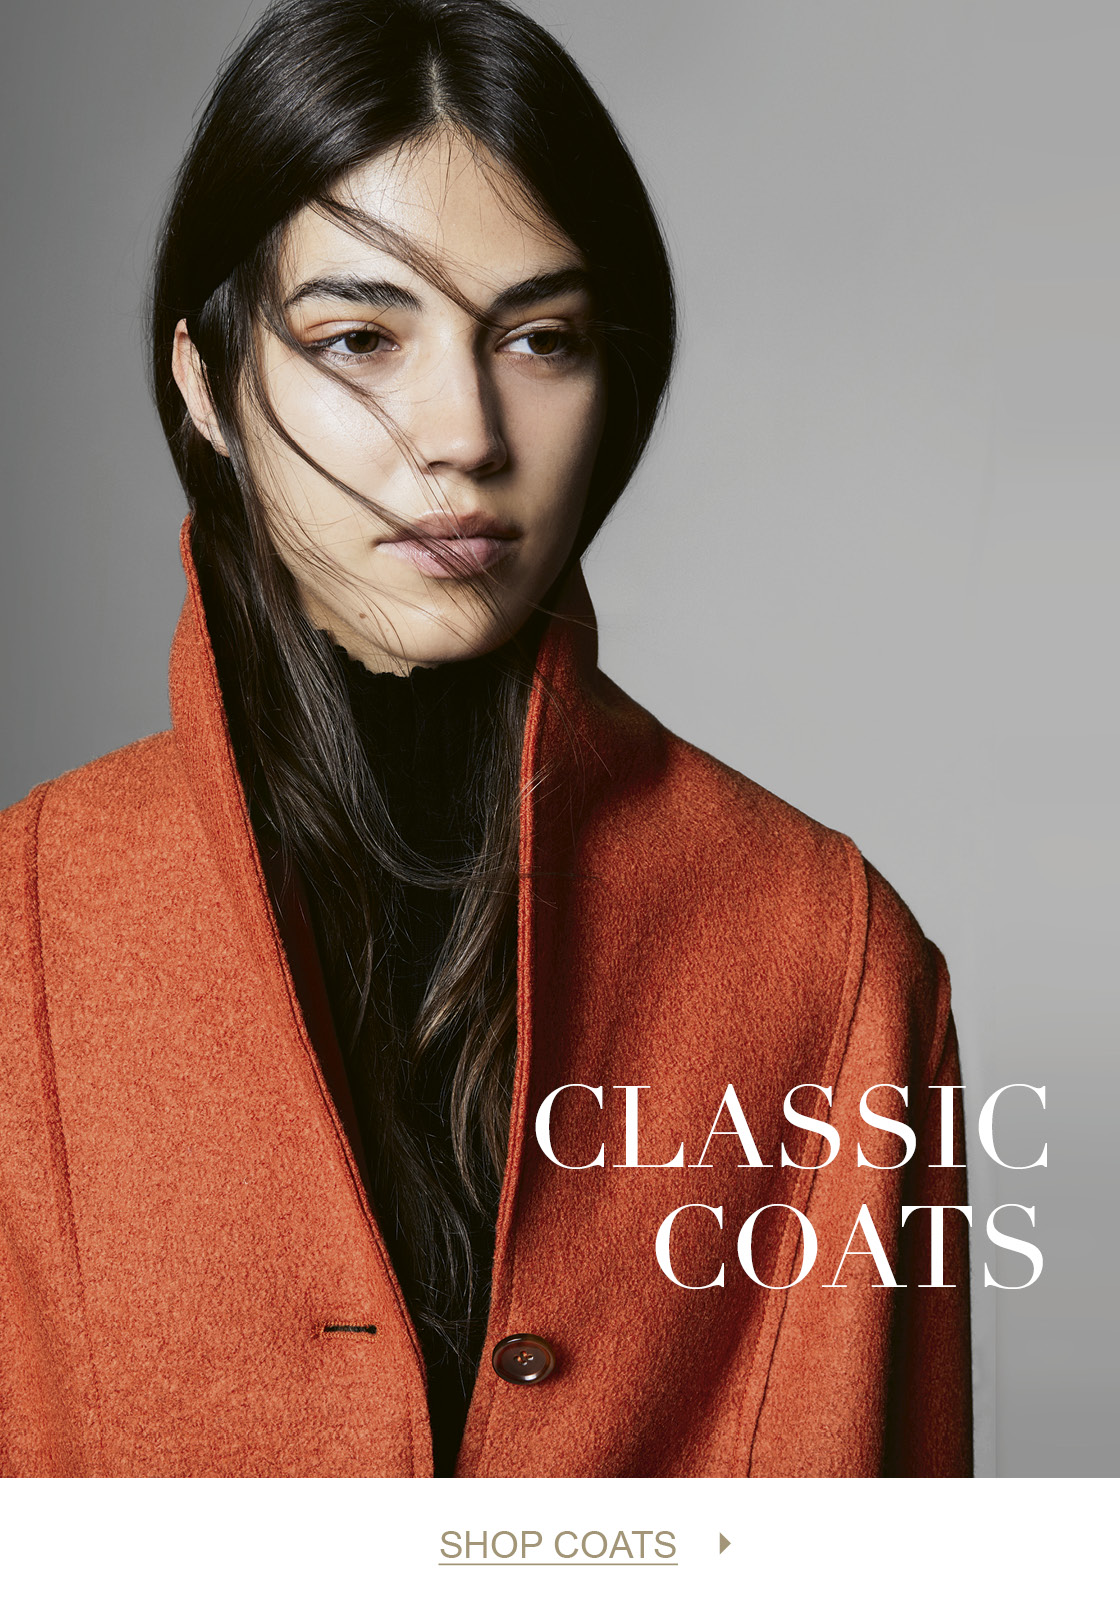 Shop our classic coats!